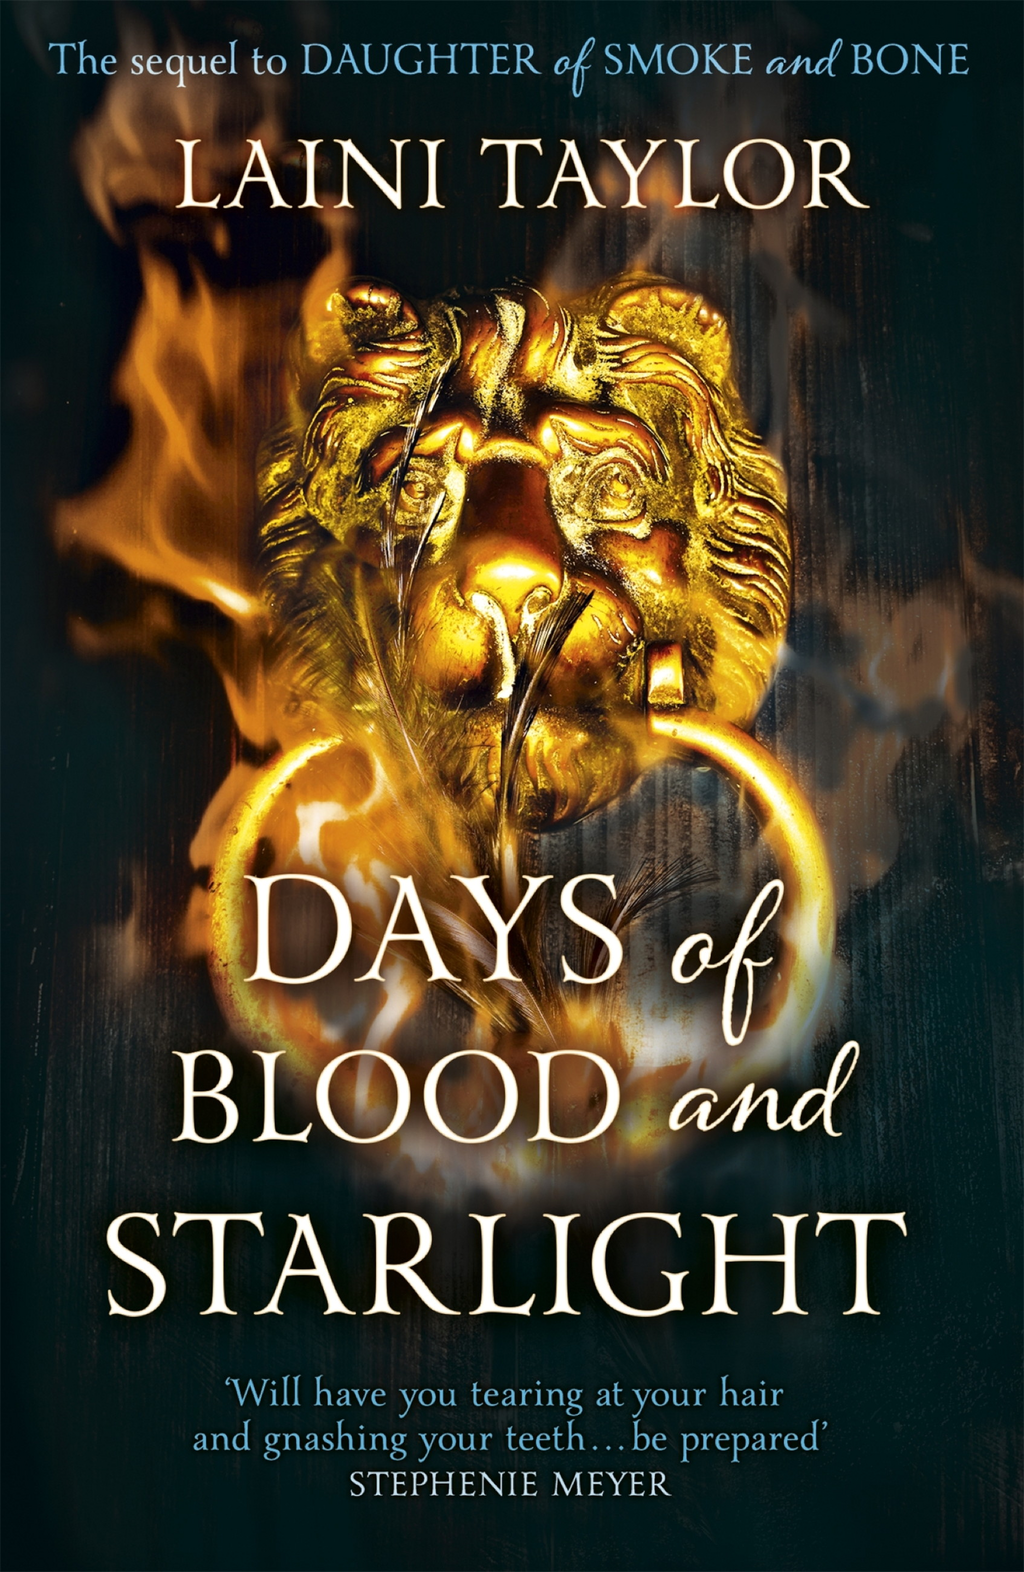 Days of Blood and Starlight (Daughter of Smoke and Bone Trilogy 2) Daughter of Smoke and Bone Trilogy: Book Two